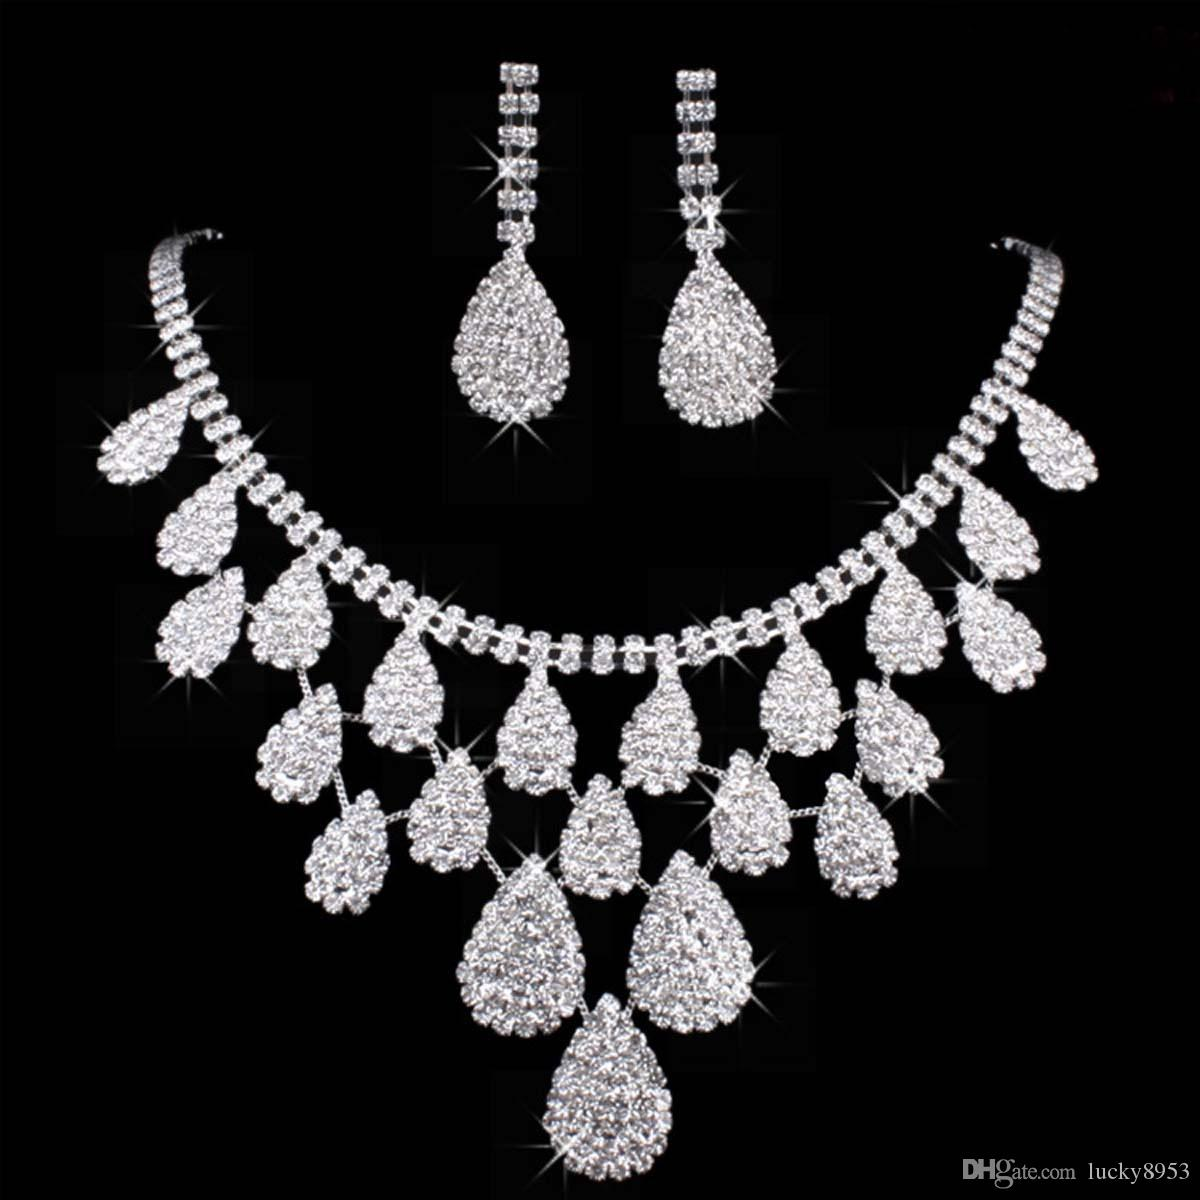 Wedding Jewelry Sets Silver Artificial Pearl Rhinestone Crystal Bridal Dress Accessories Necklace Earrings Set Simple Style Shining 2018 From